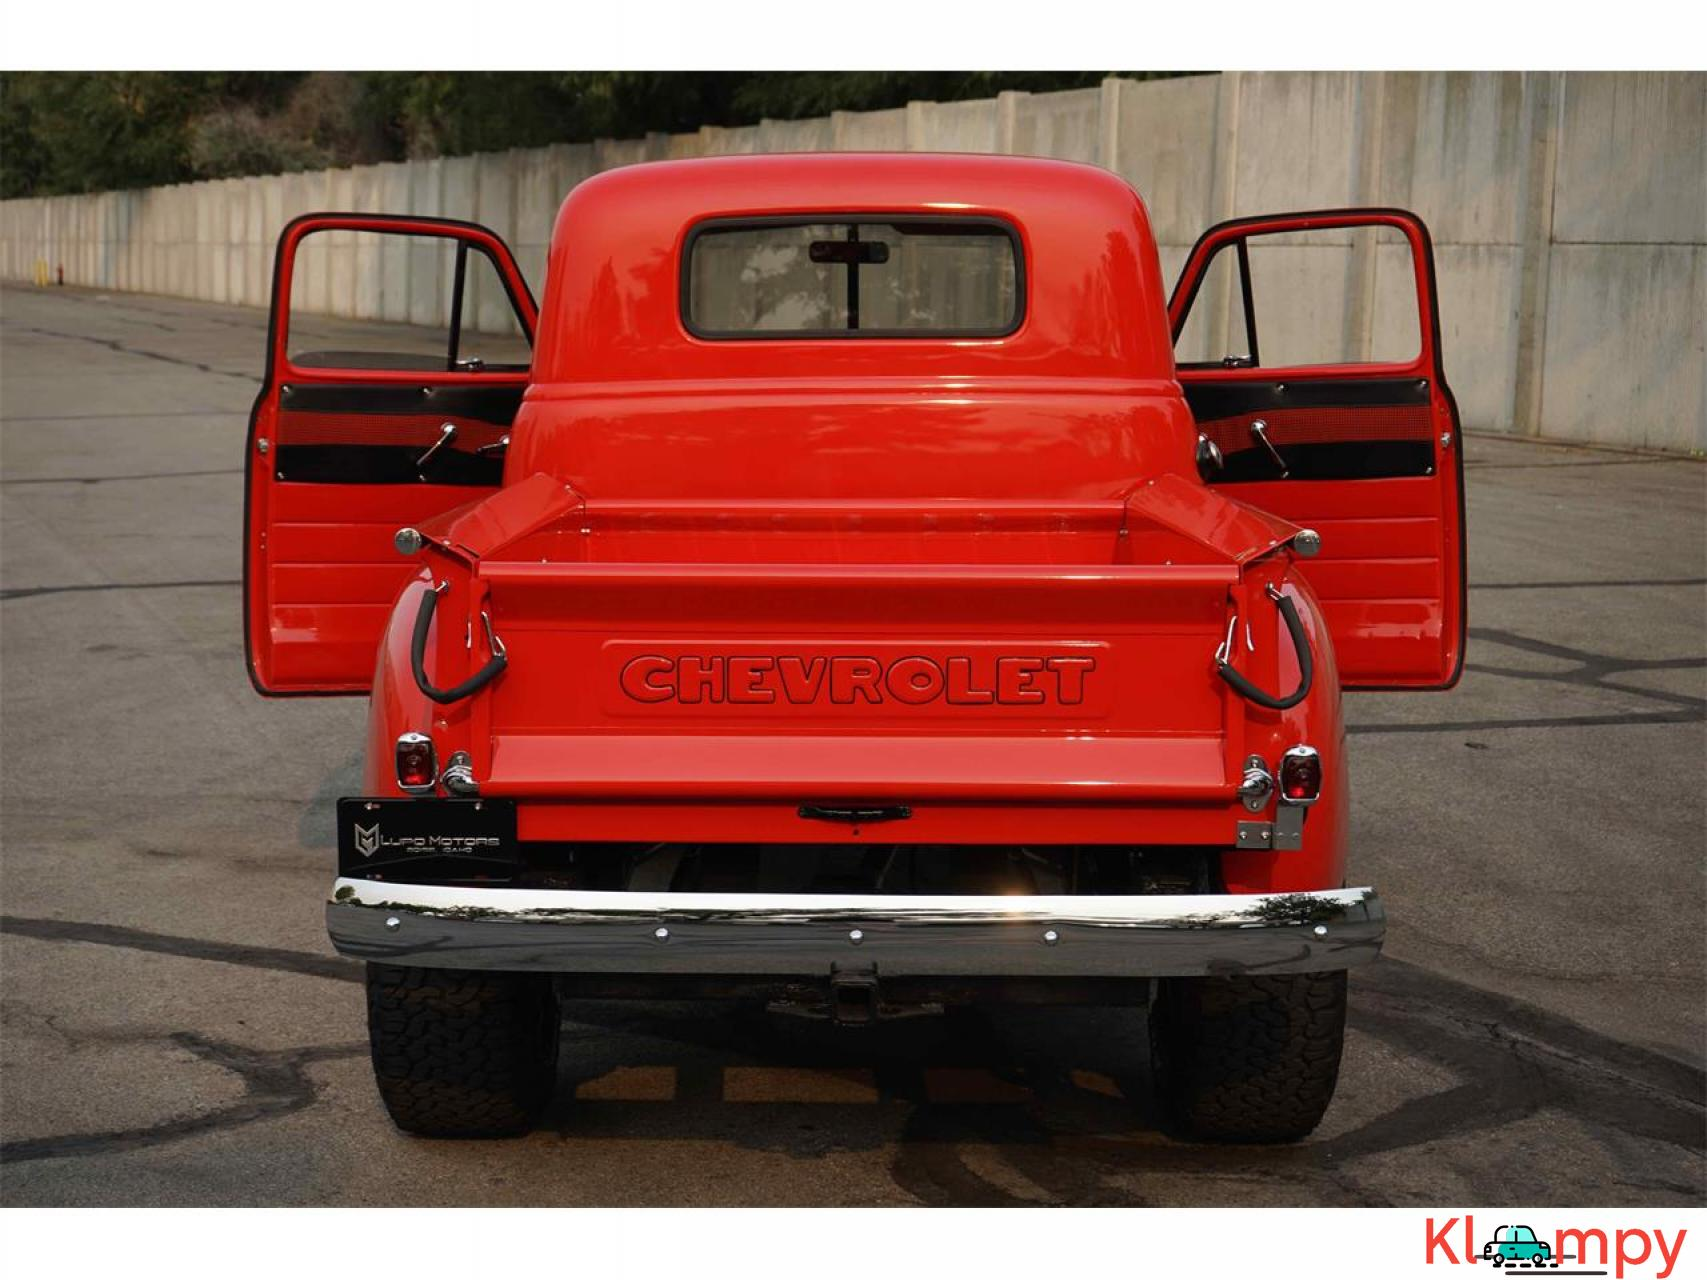 1951 Chevrolet 3100 350 V8 with a B&M Supercharger - 6/17